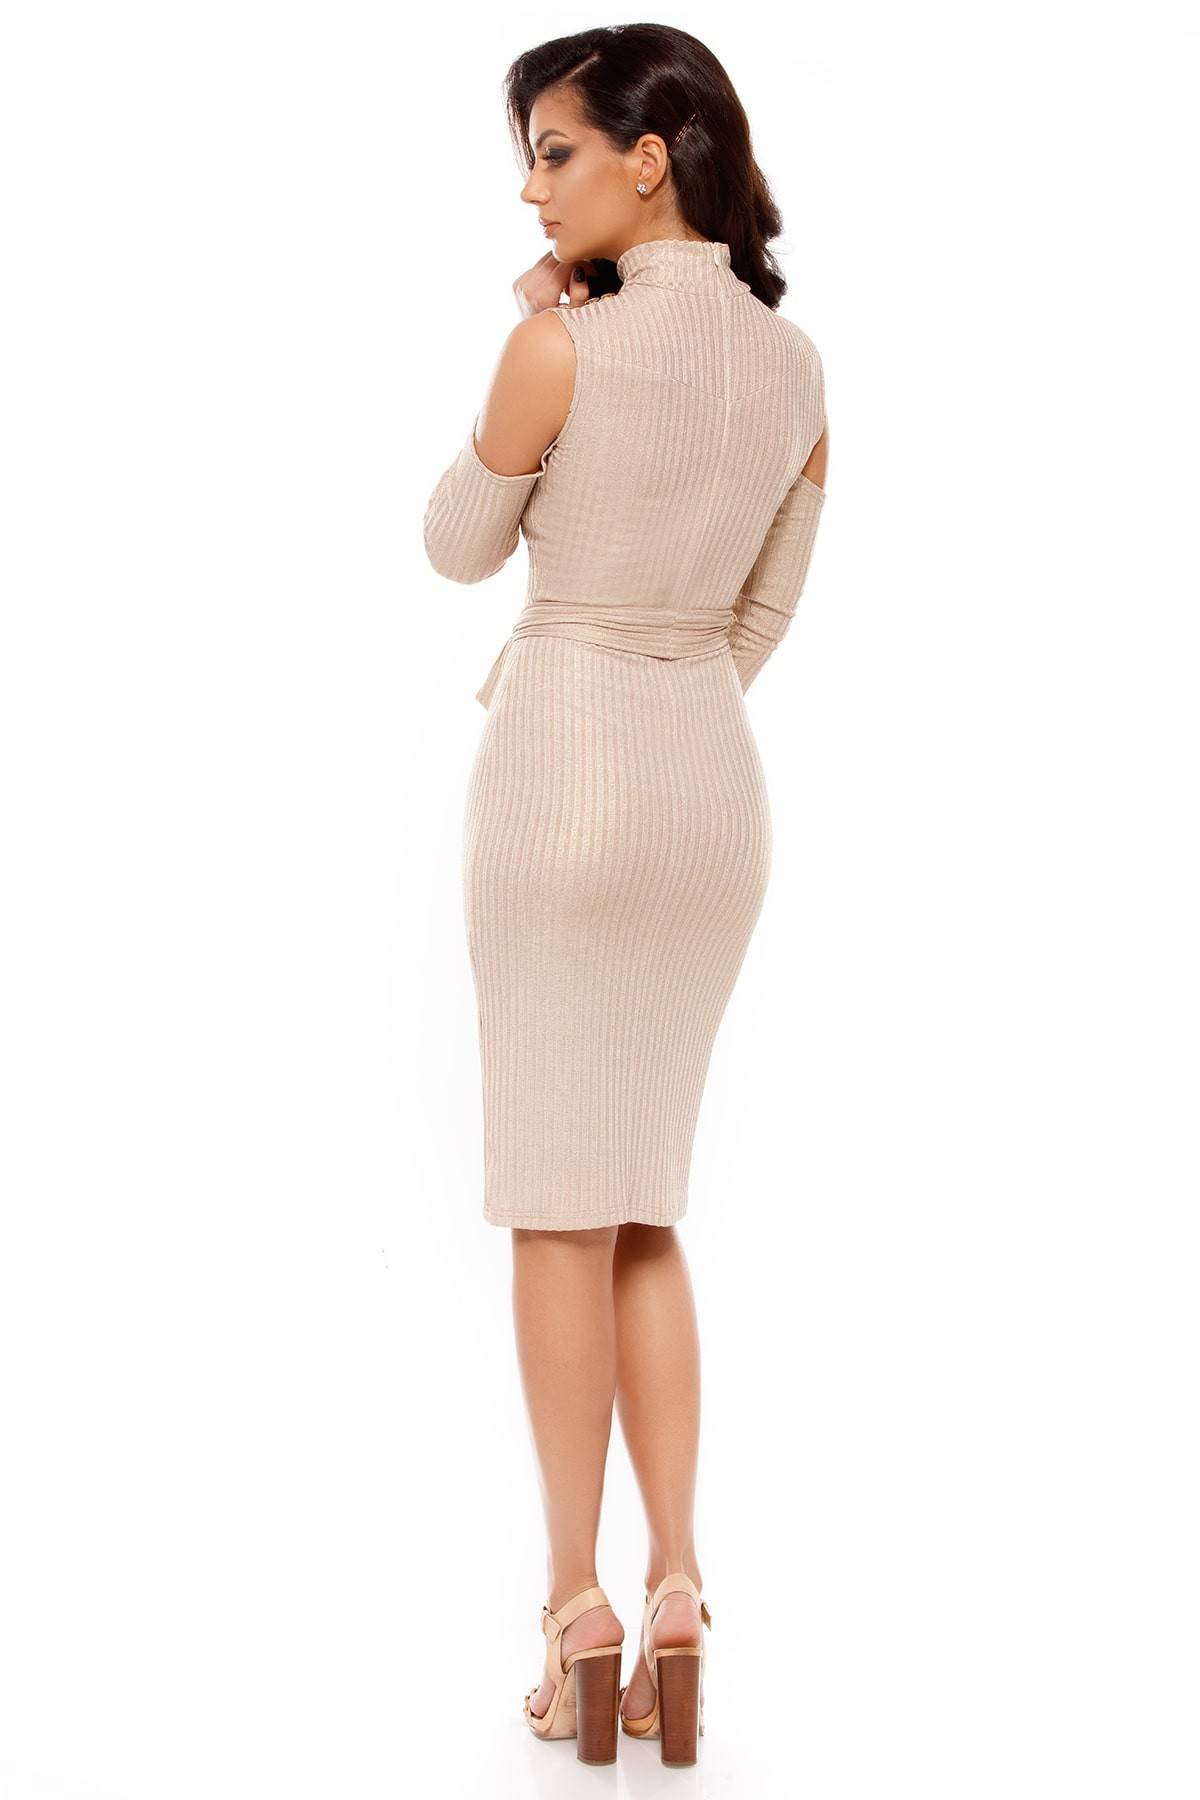 MissGrey Rochie Kaily Aurie